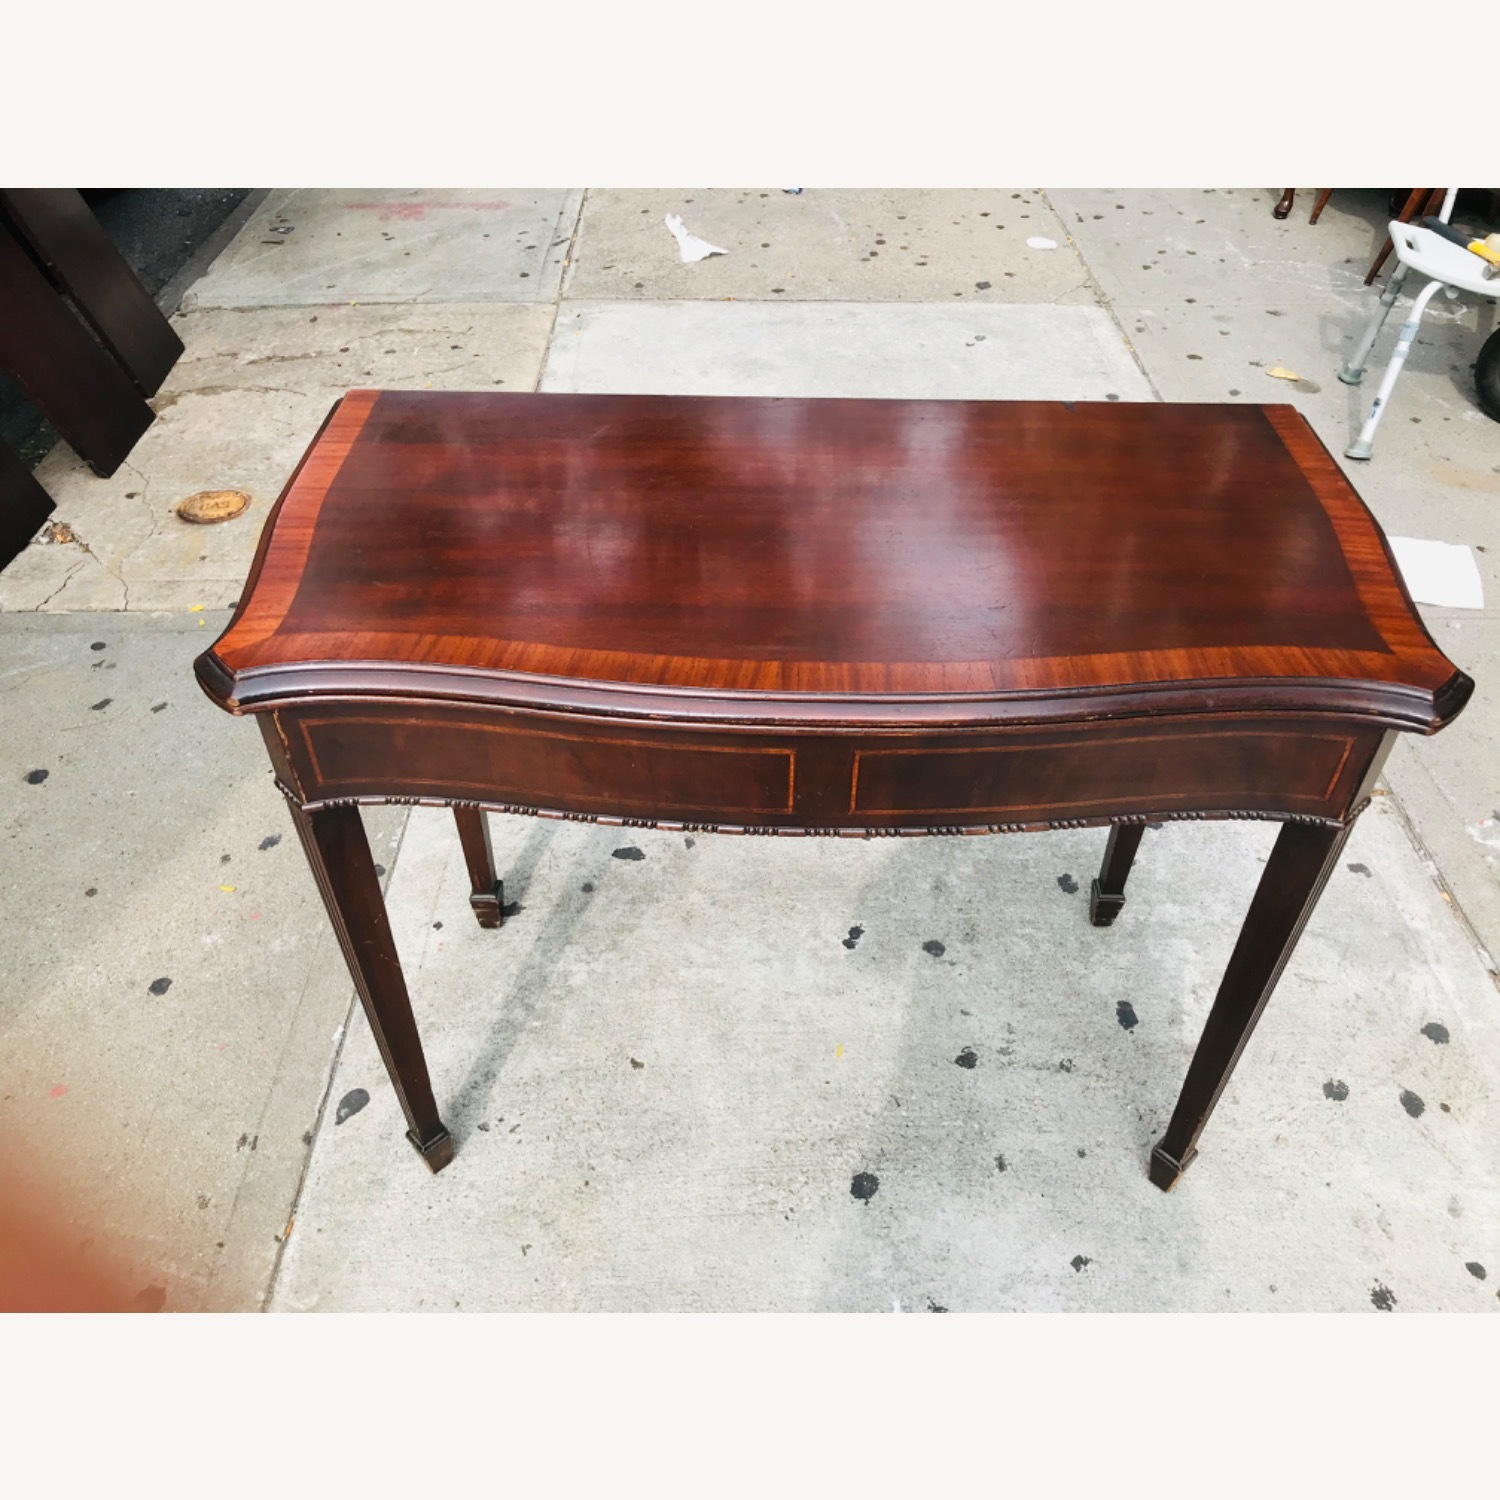 Antique 1920s Mahogany Table w/3 Leaves  - image-6